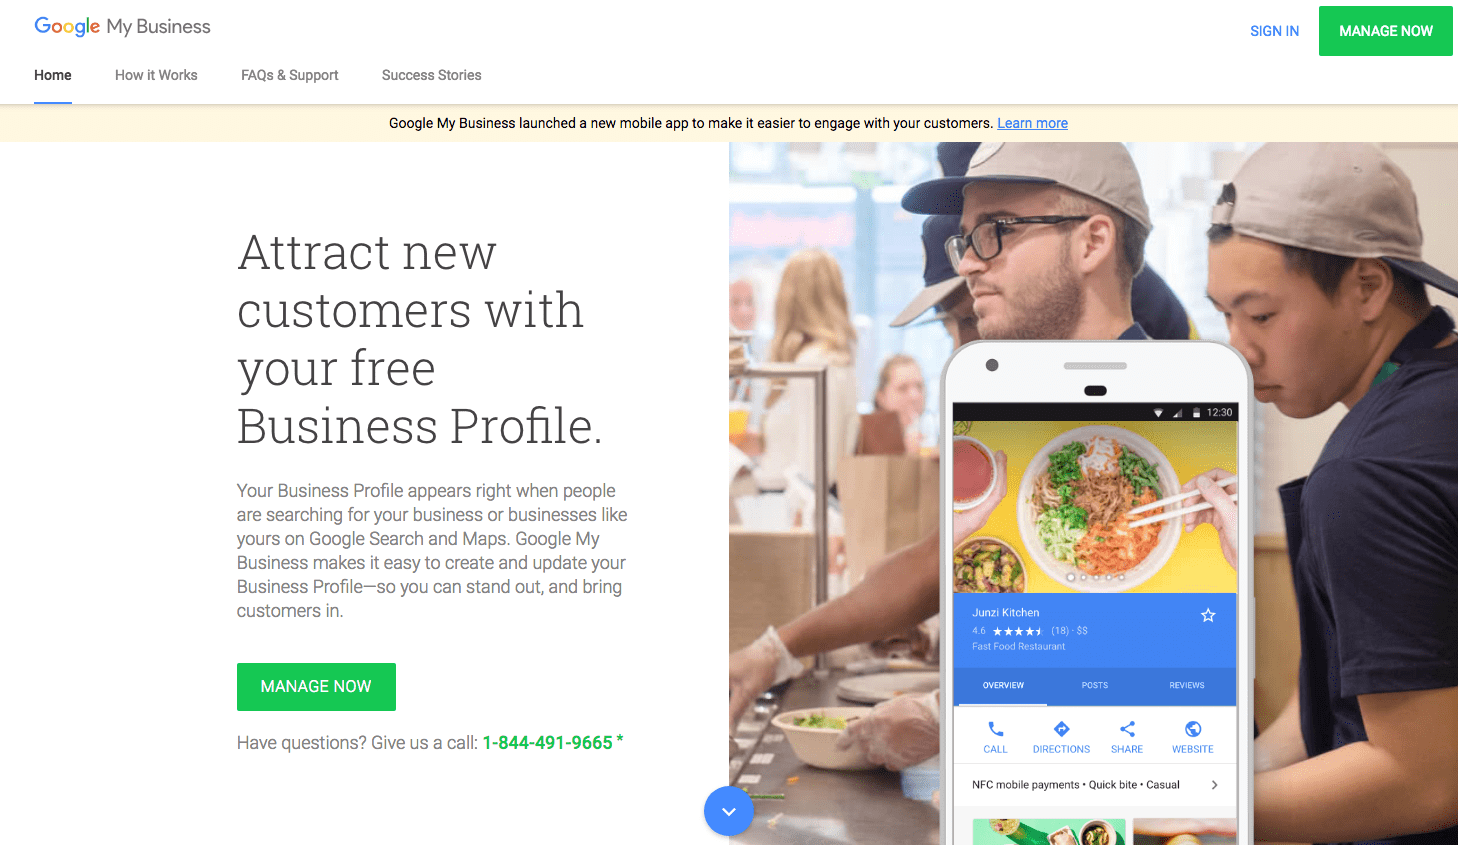 Google My Business - A Tool To Learn More About Your Business